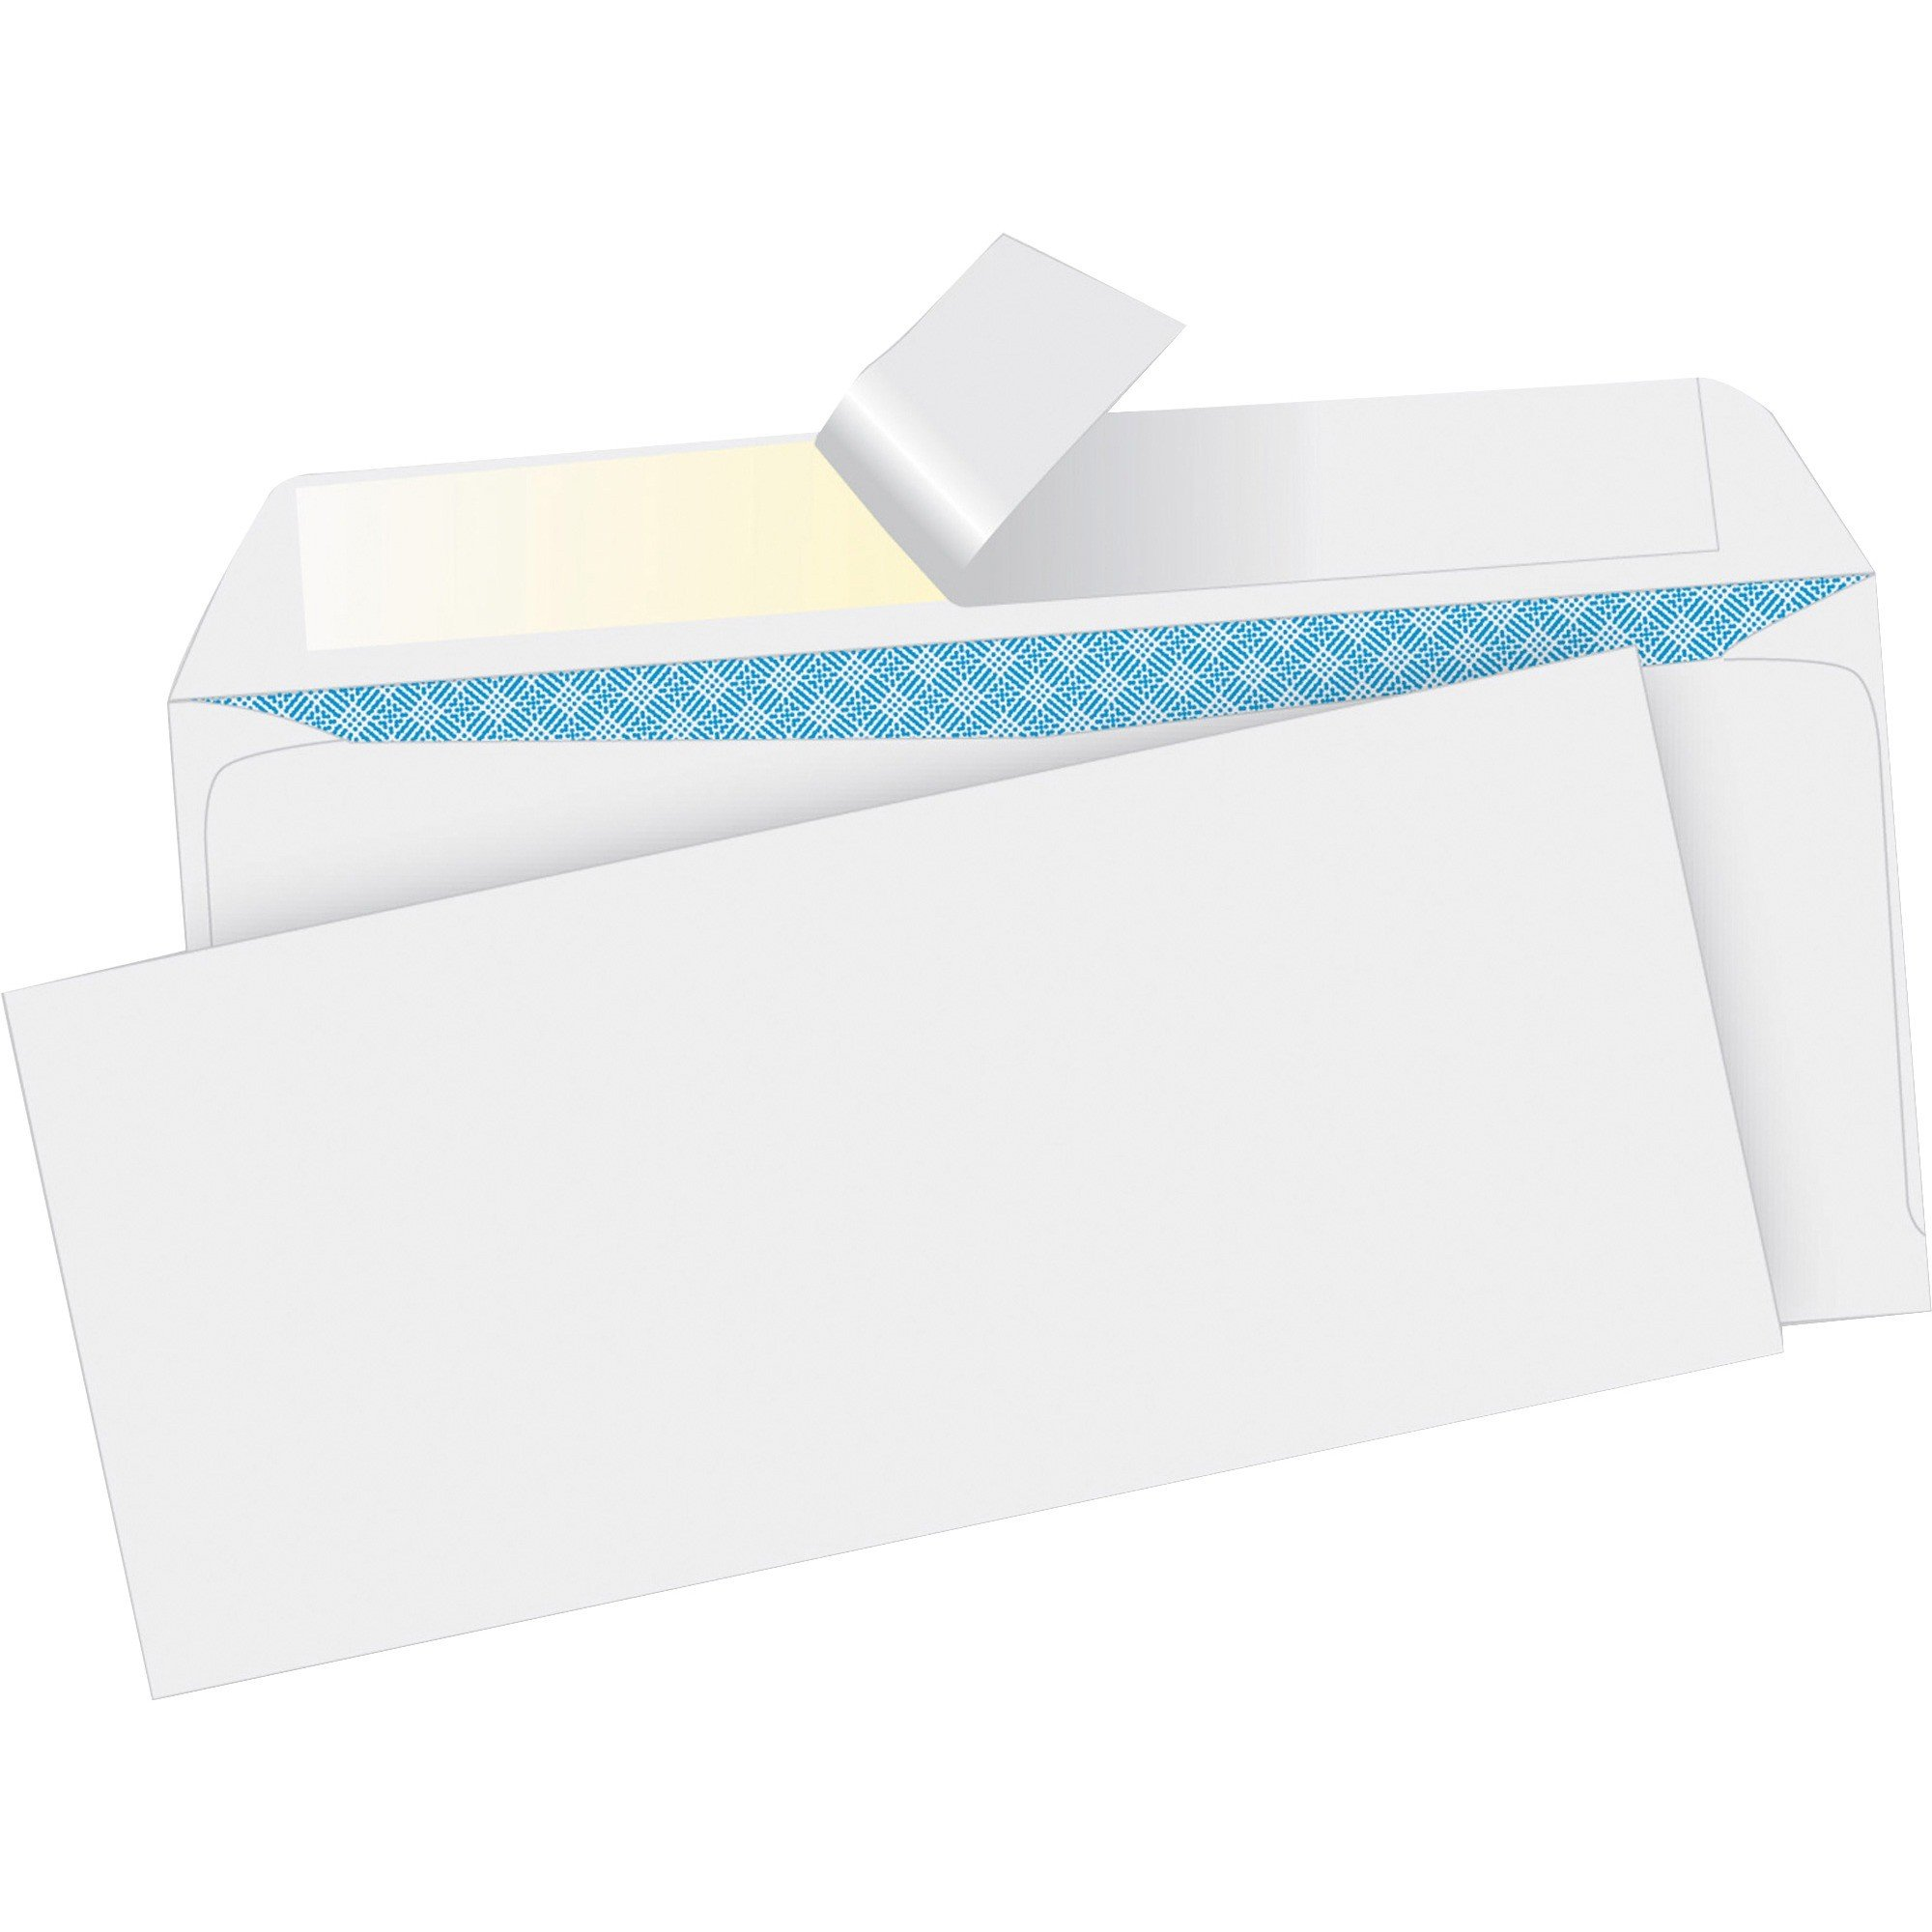 "Business Source #10 (9.50"" x 4.13"") Regular Tint Peel/Seal White Envelopes  - 500/Box"